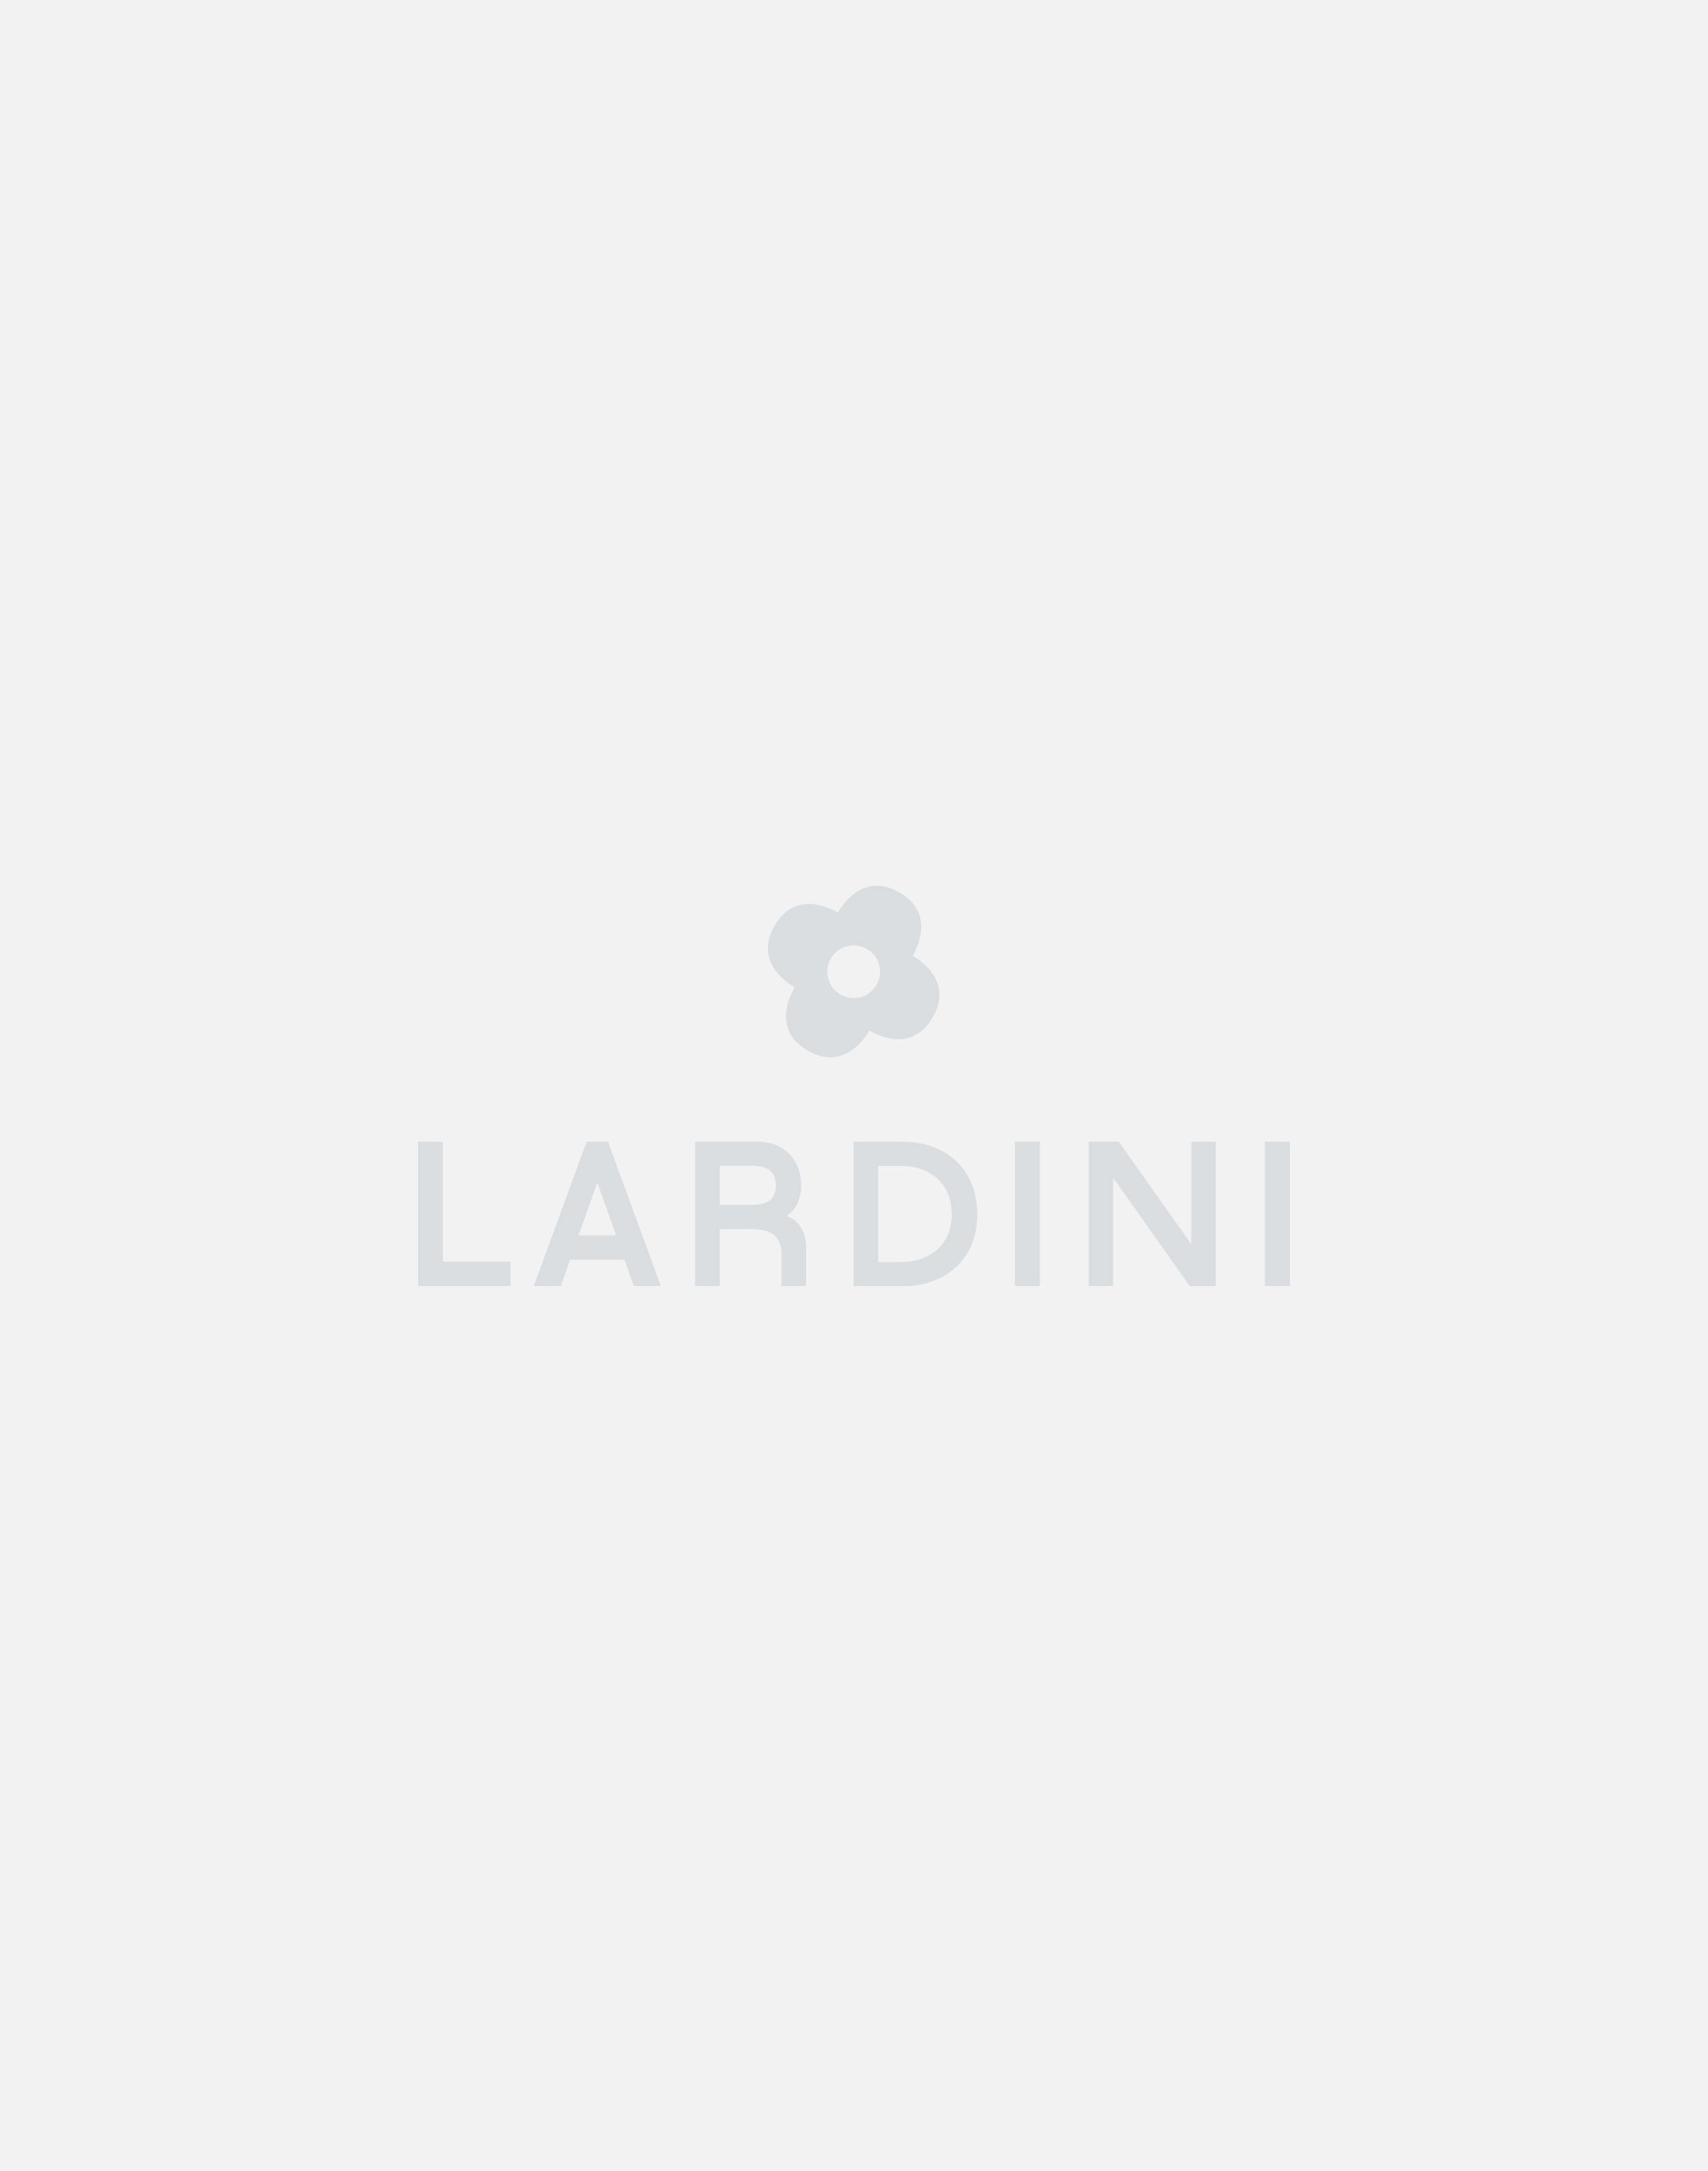 White T-shirt with embroidery - Luigi Lardini capsule